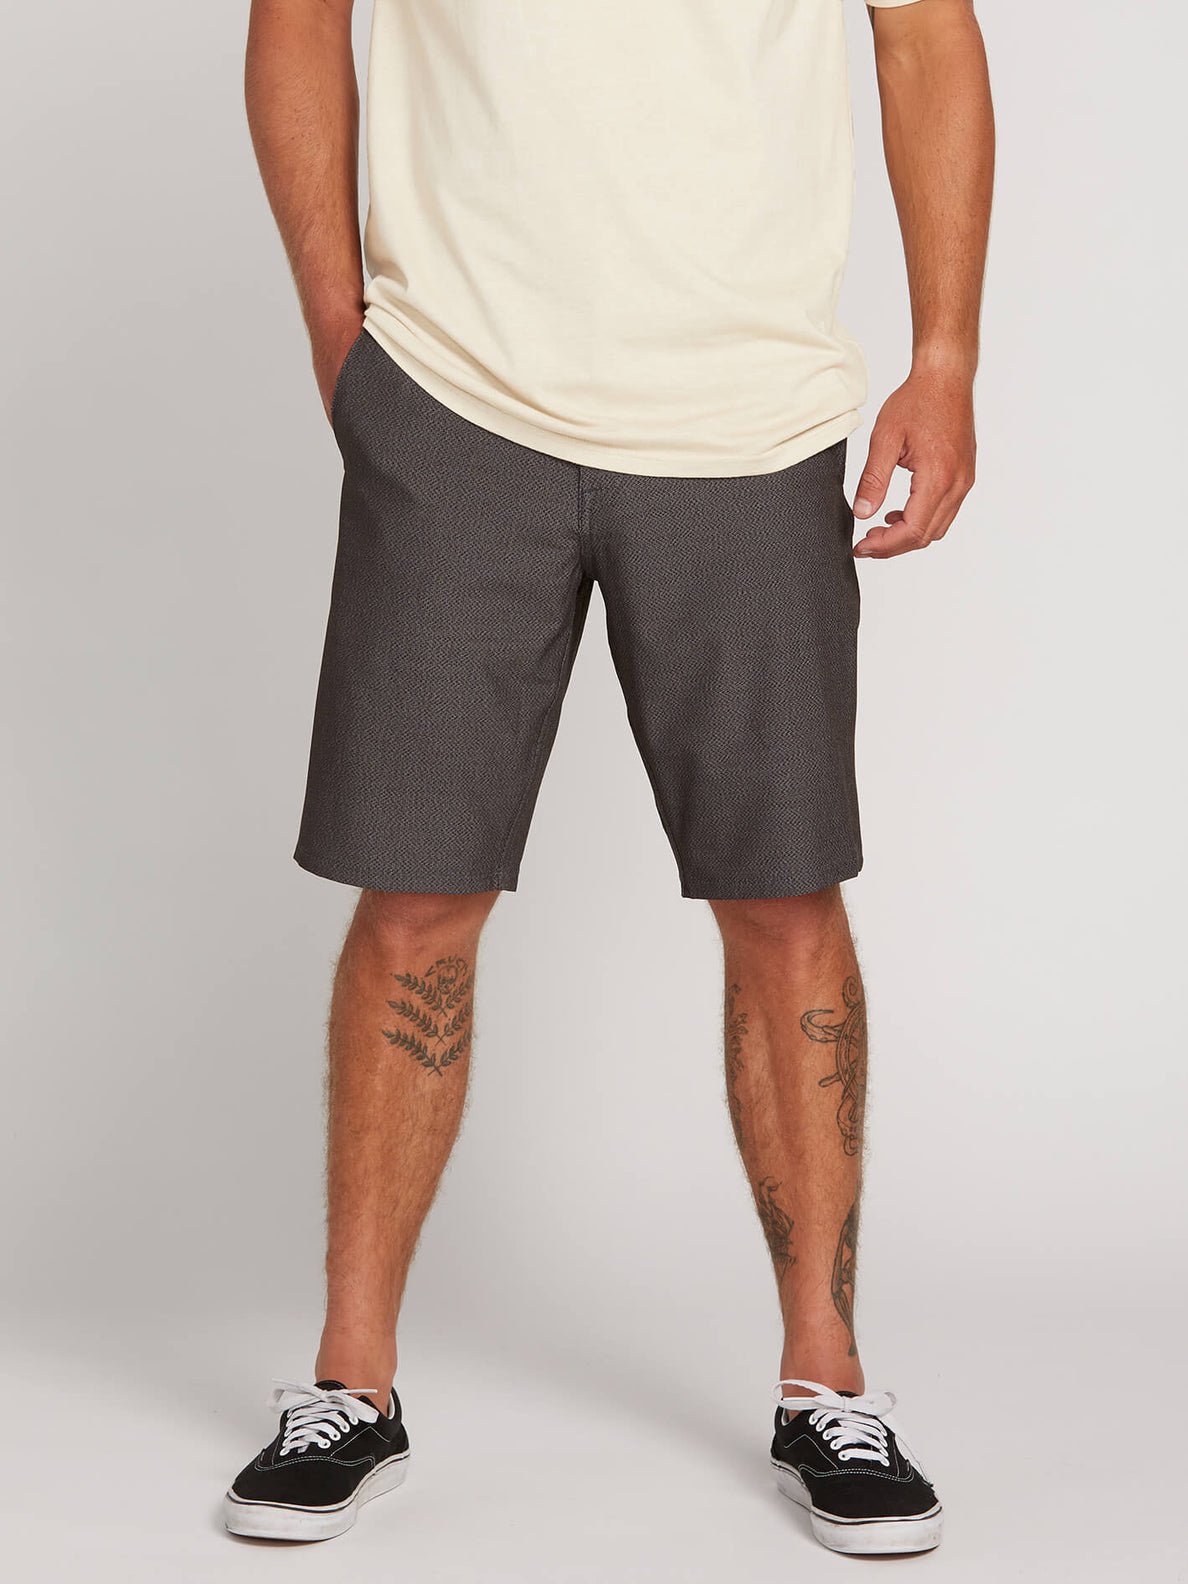 Frickin Surf N' Turf Dry Hybrid Shorts In Charcoal Heather, Front View